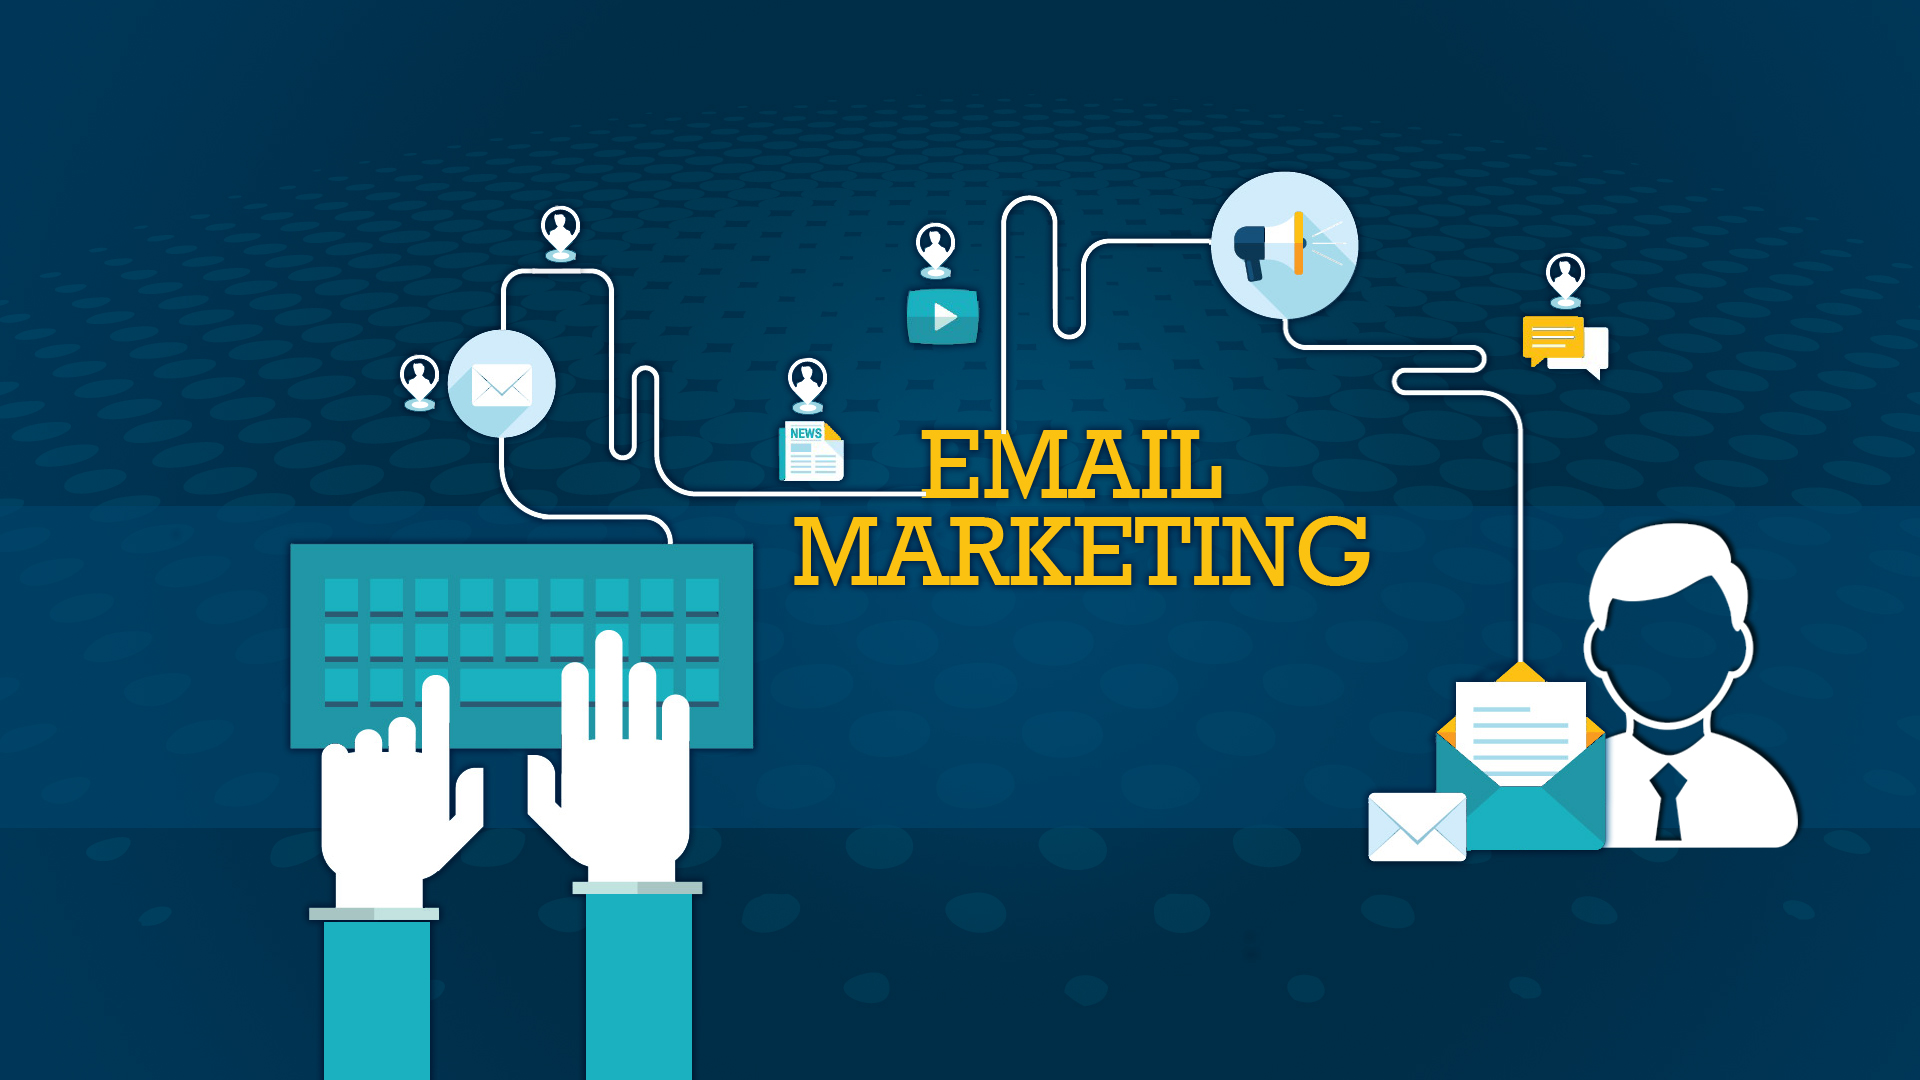 Email Marketing Image